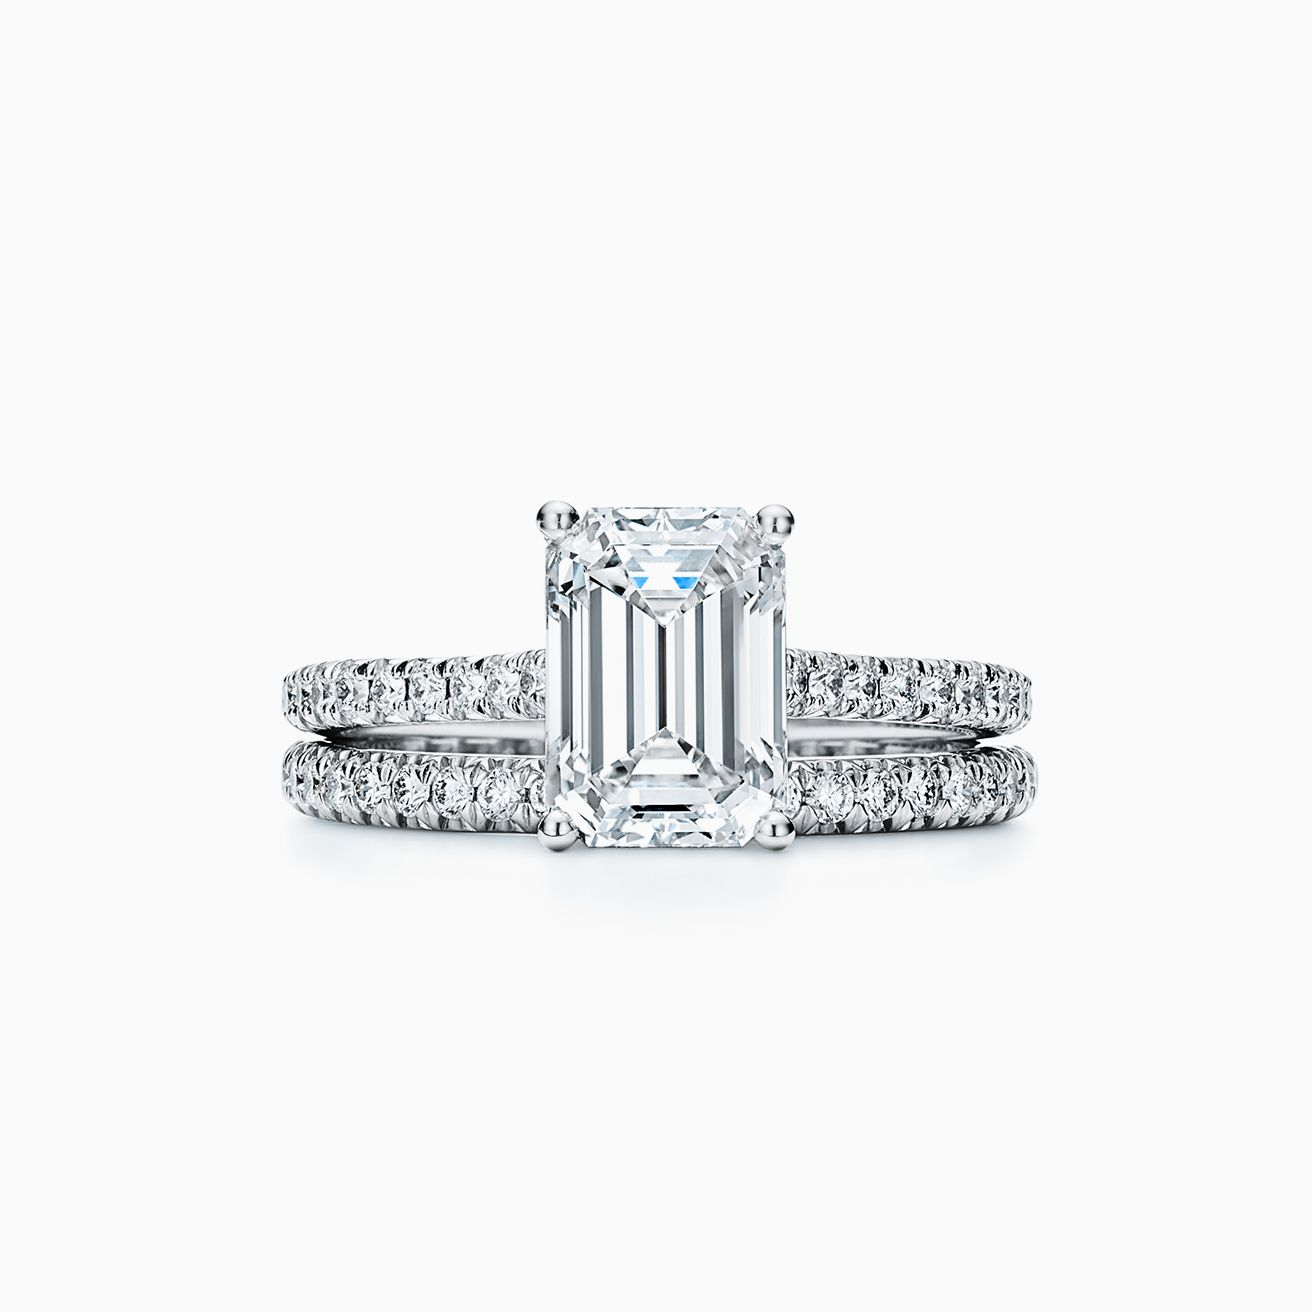 9b2ef8815d1c Tiffany Novo® emerald-cut engagement ring with a pavé diamond band in  platinum.